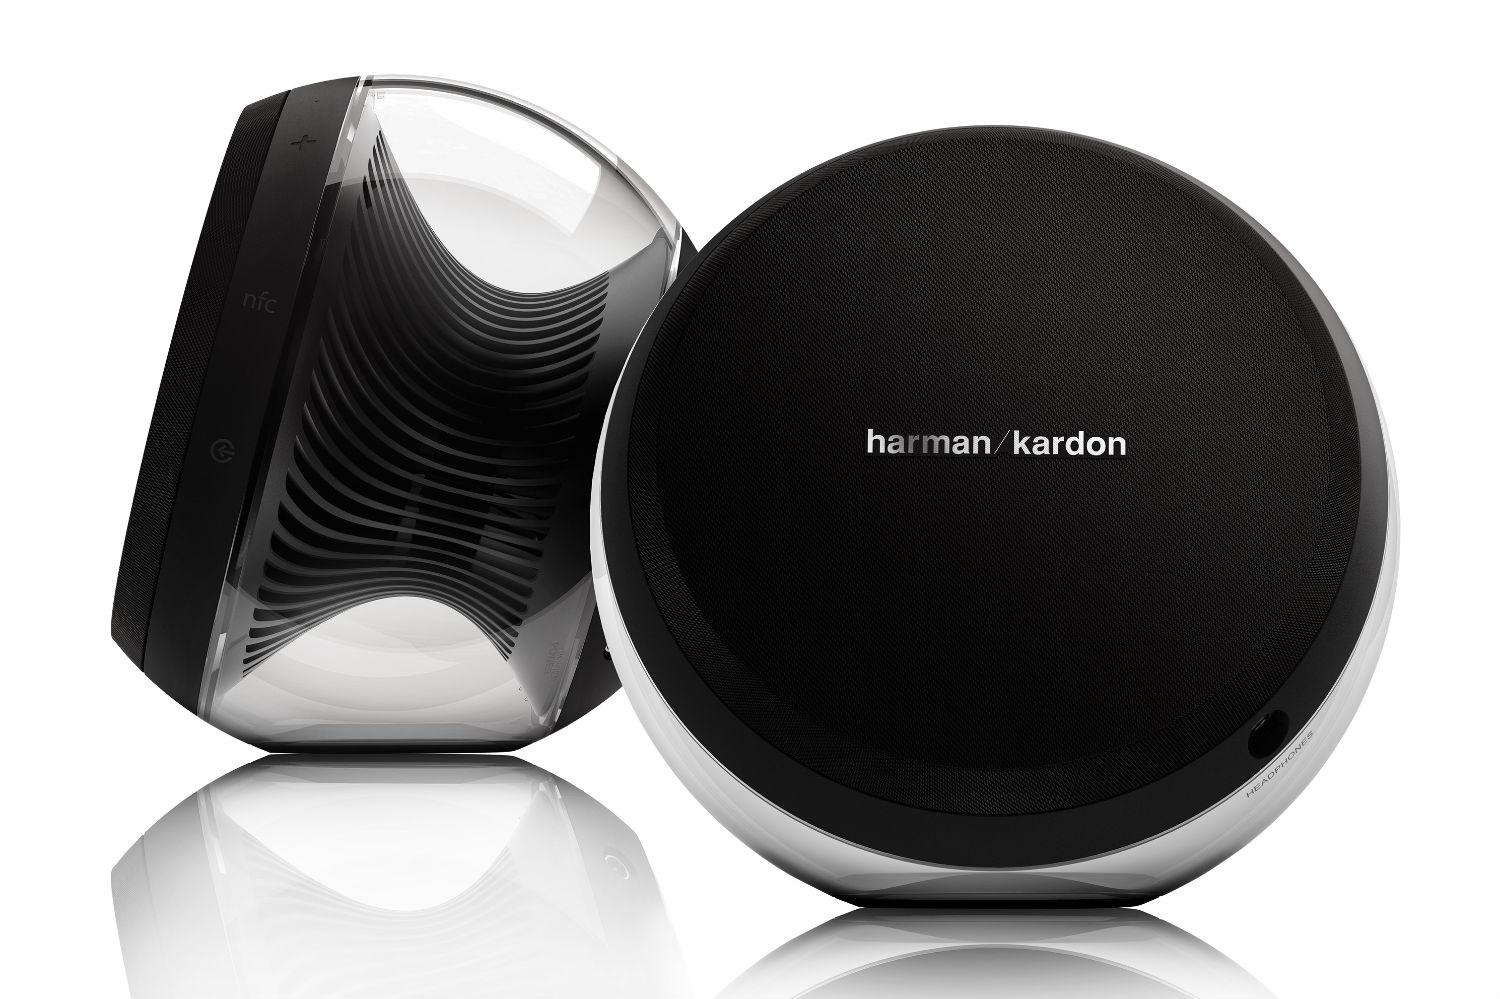 harman kardon 39 s new nova speakers blend modern tech with. Black Bedroom Furniture Sets. Home Design Ideas